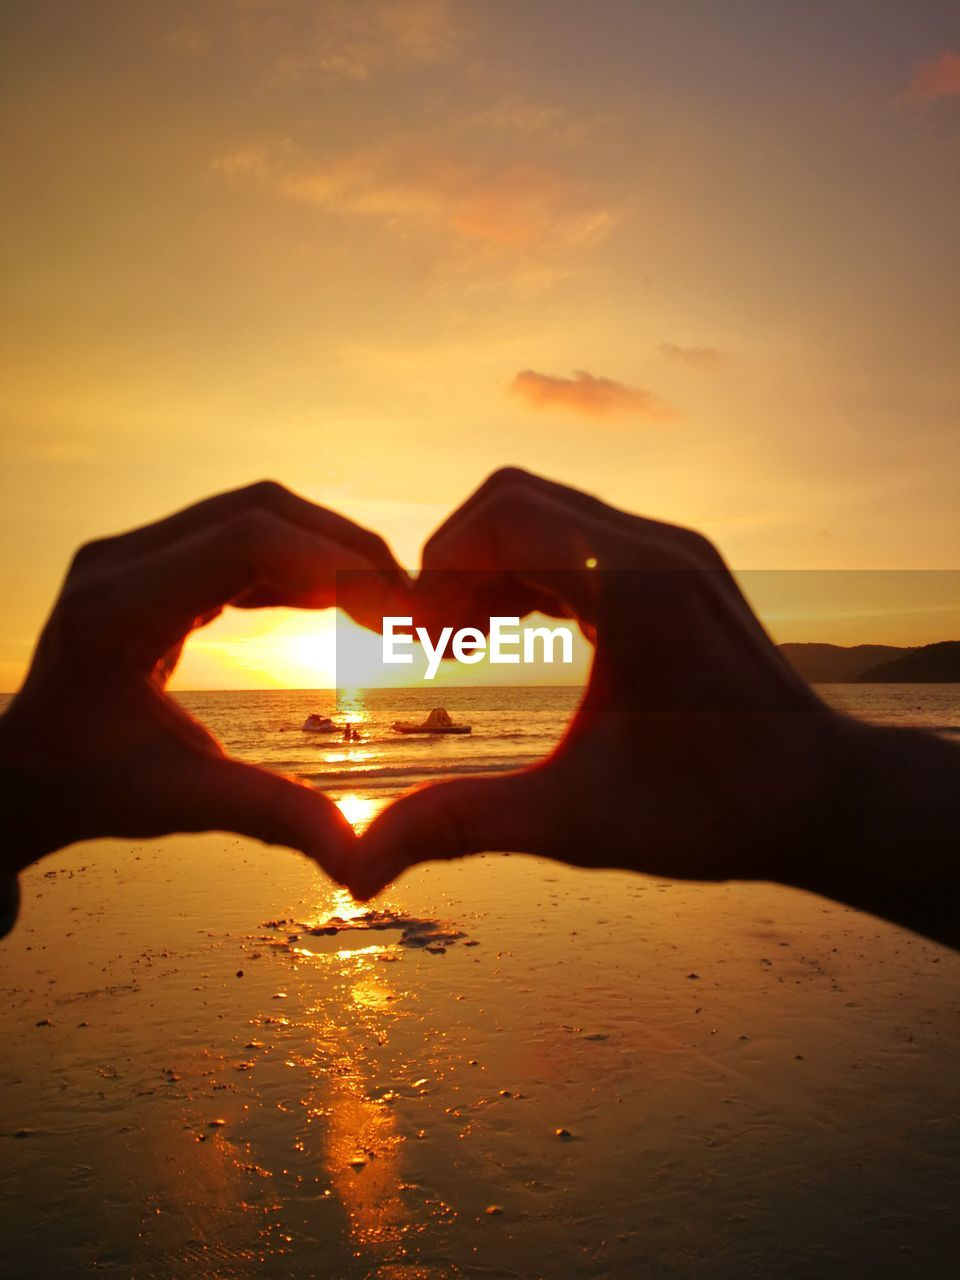 sunset, heart shape, human hand, sky, positive emotion, hand, love, human body part, orange color, sea, water, one person, emotion, making, beach, scenics - nature, body part, real people, land, sun, horizon over water, finger, couple - relationship, outdoors